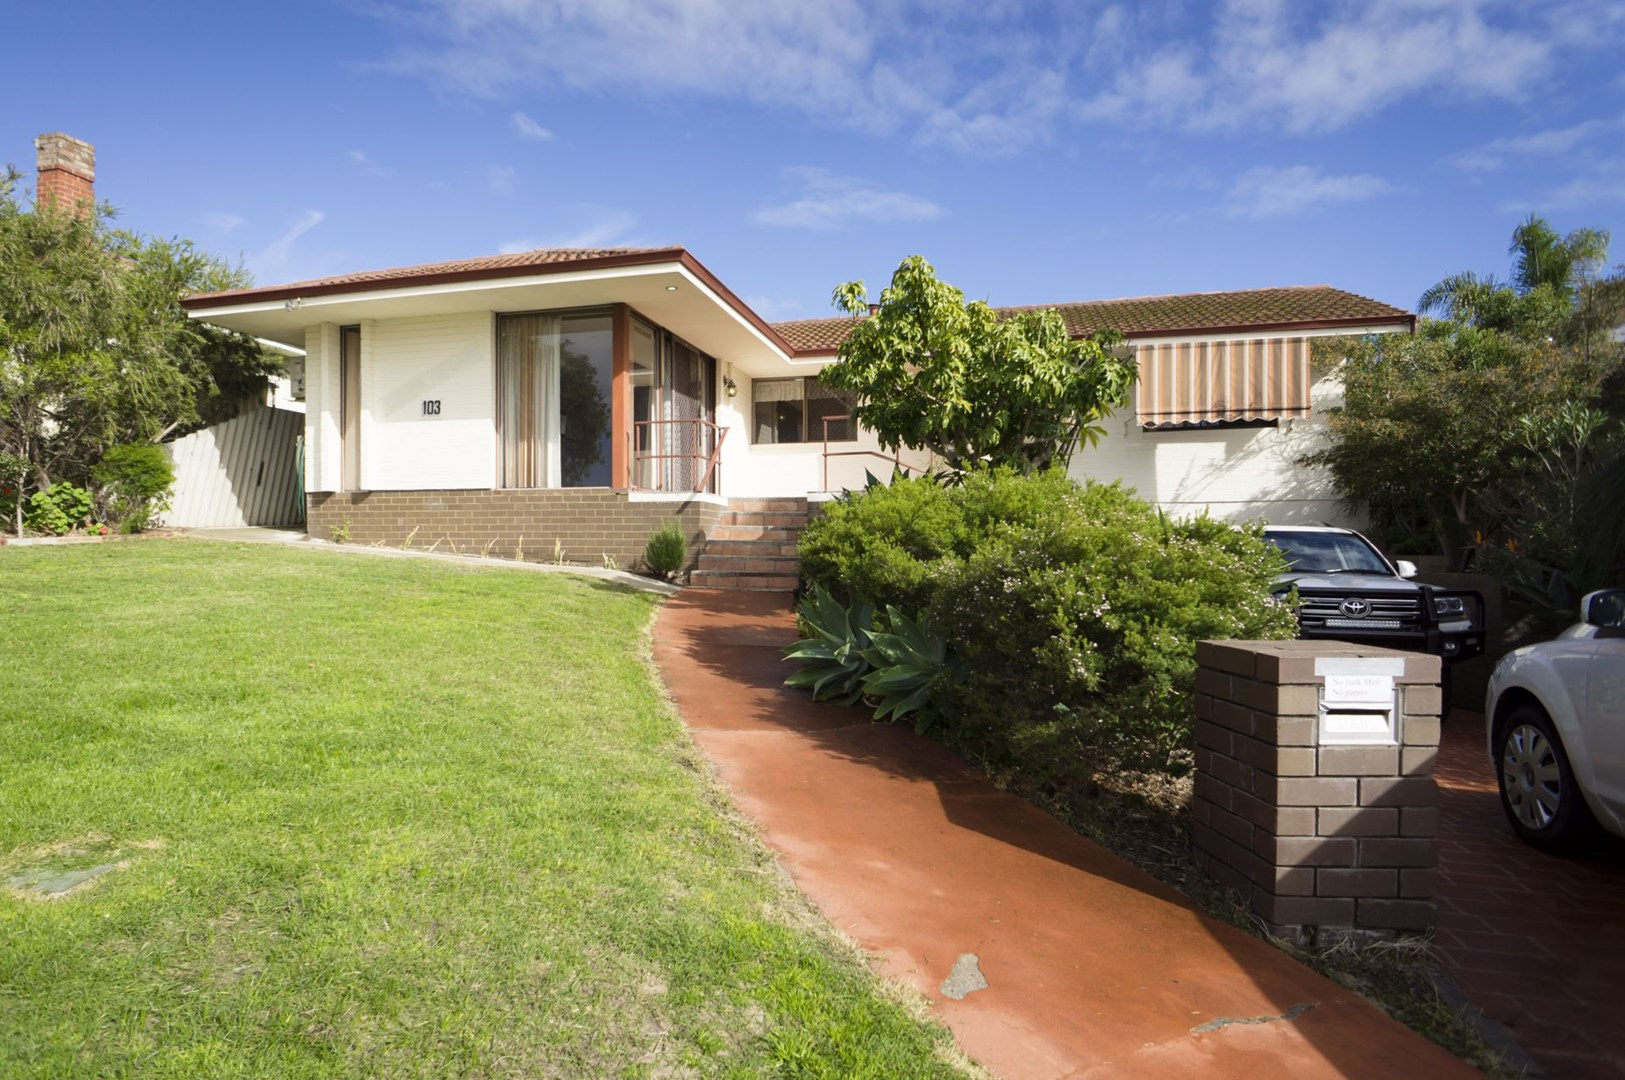 $735,000 neg. All offers considered